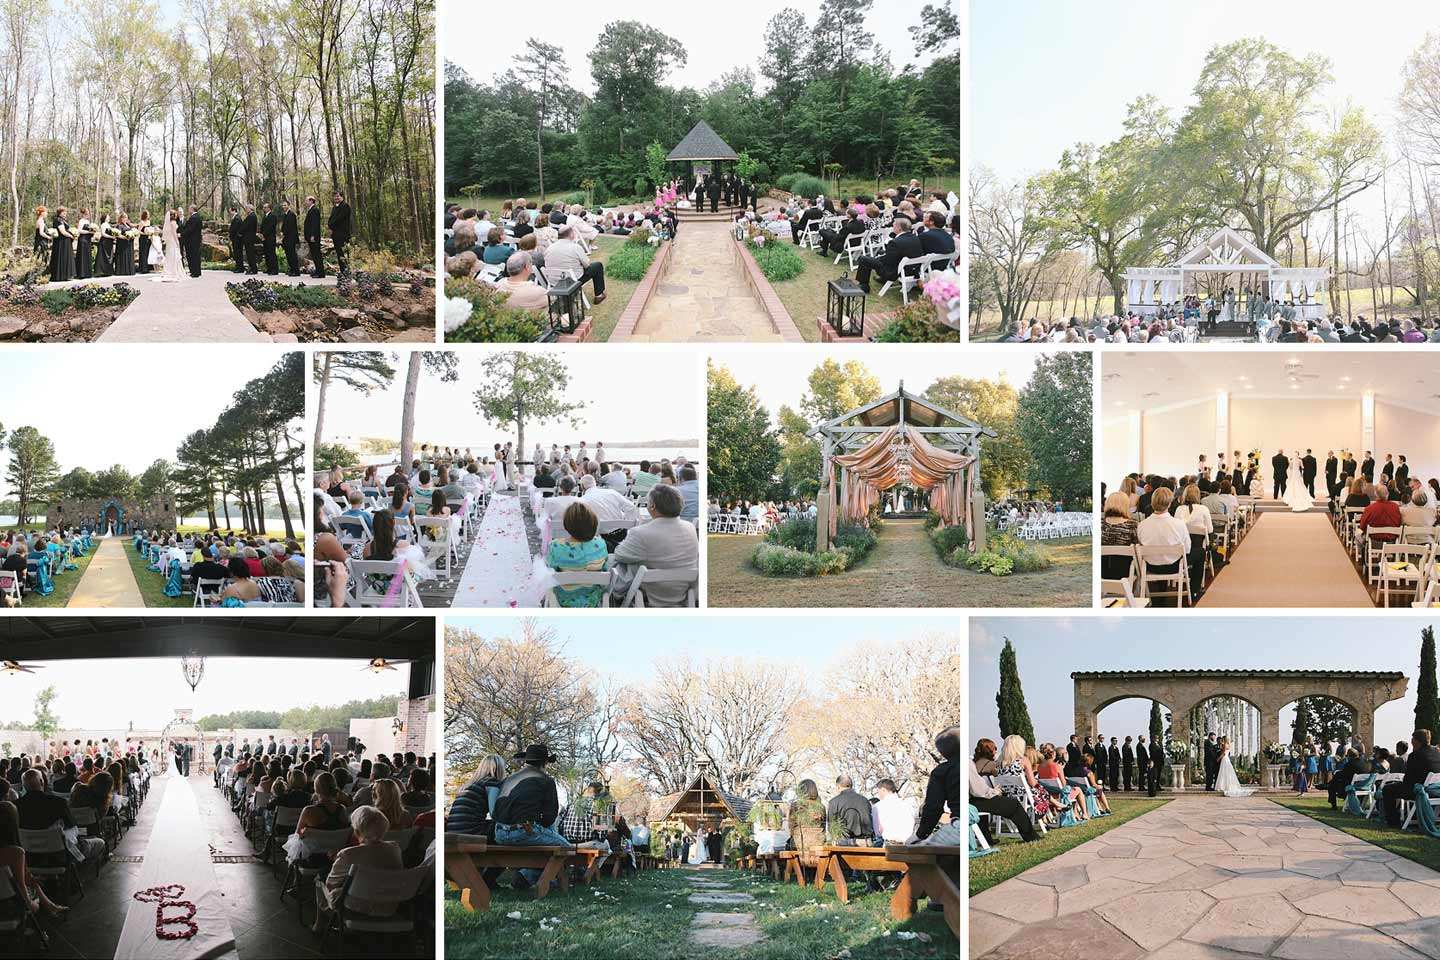 10 amazing places to get married in east texas alexm for Pretty places to get married